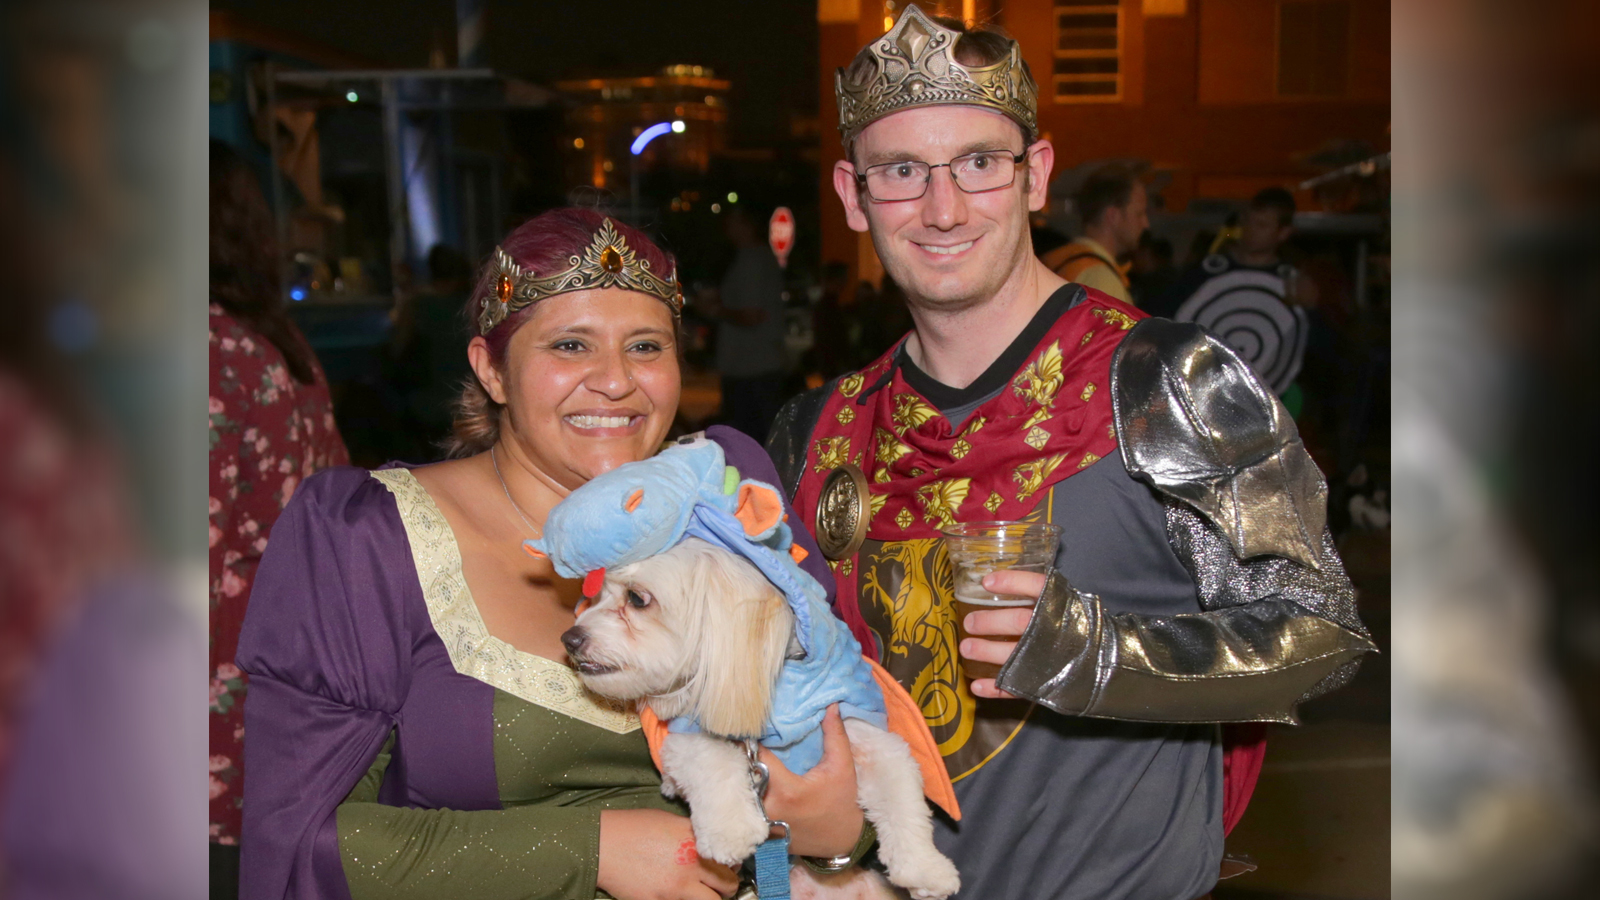 The dogs of Barktoberfest